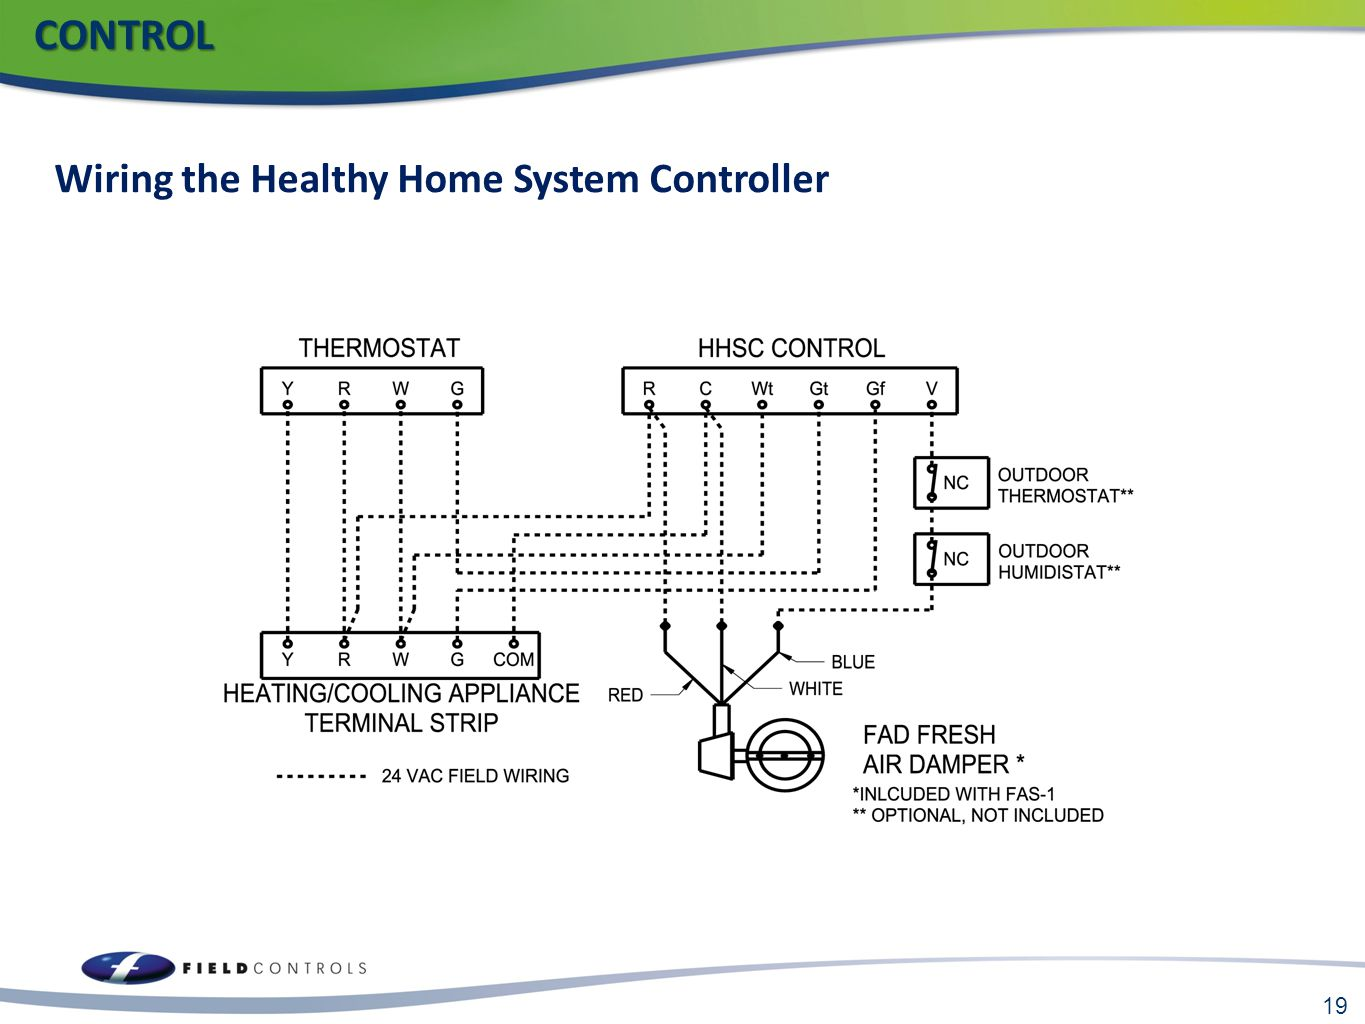 19 CONTROL CONTROL Wiring the Healthy Home System Controller